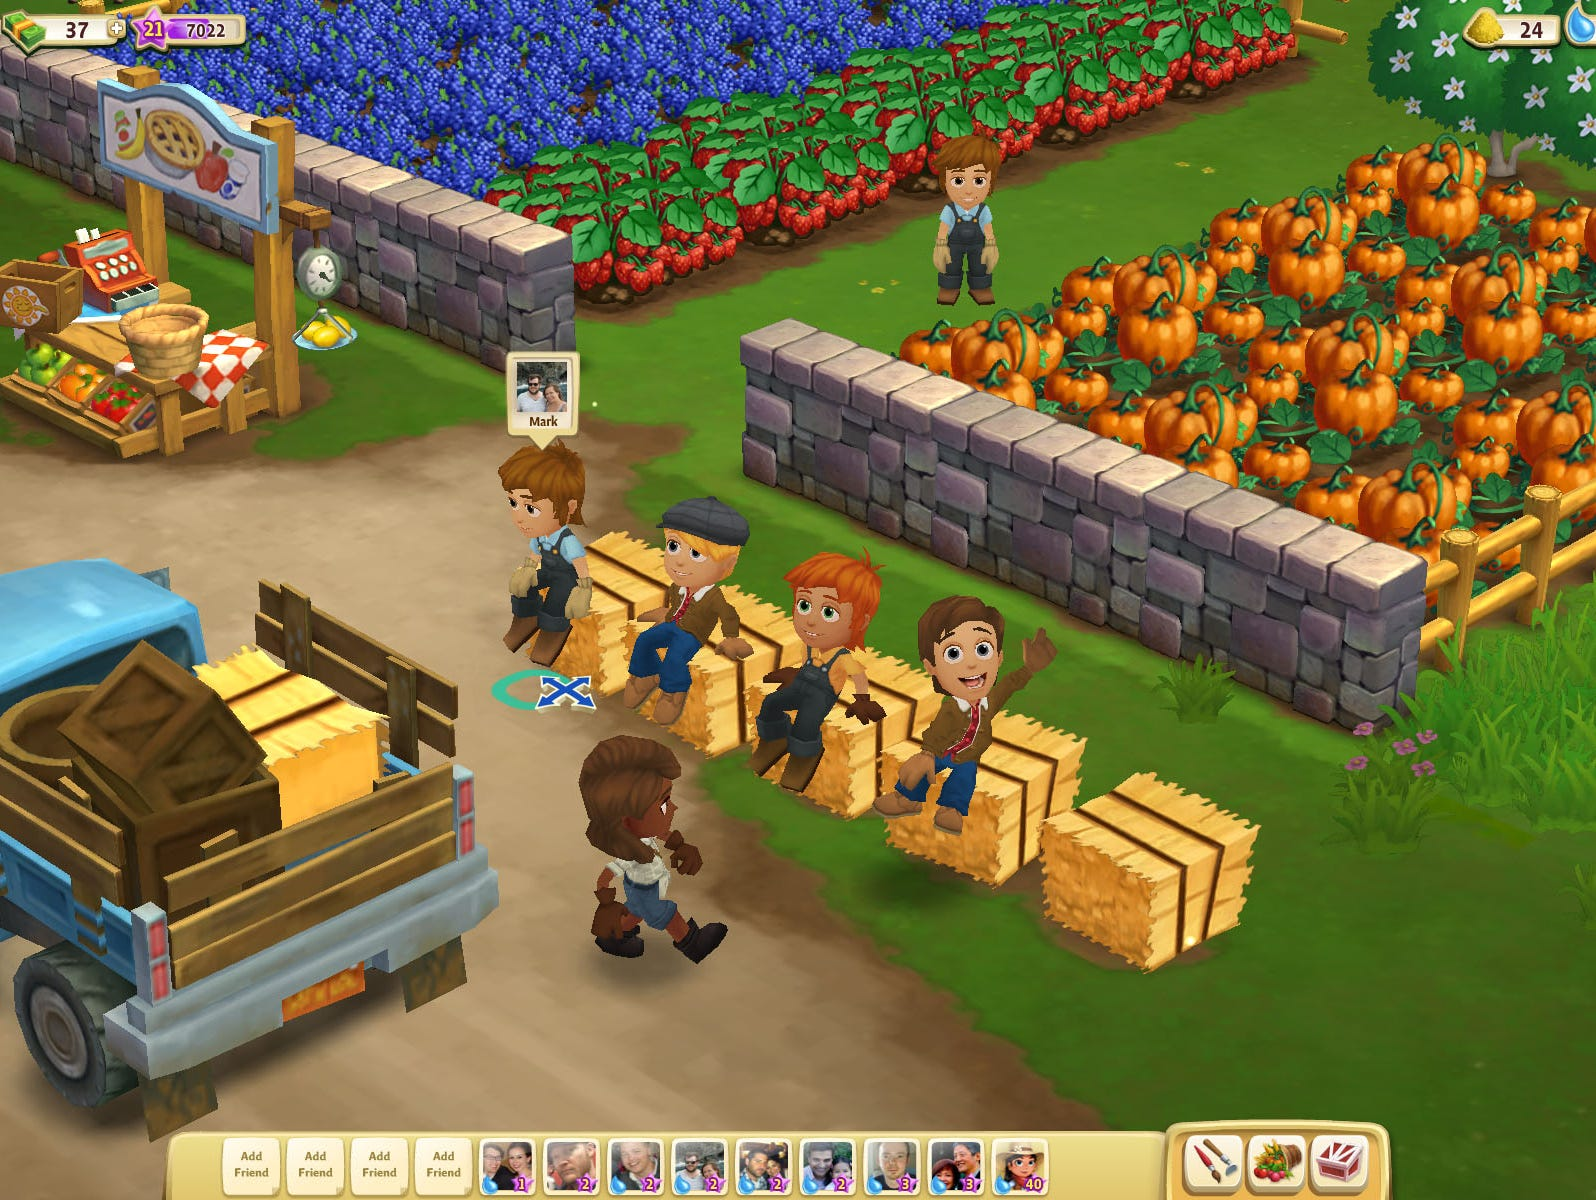 A screenshot of FarmVille 2.